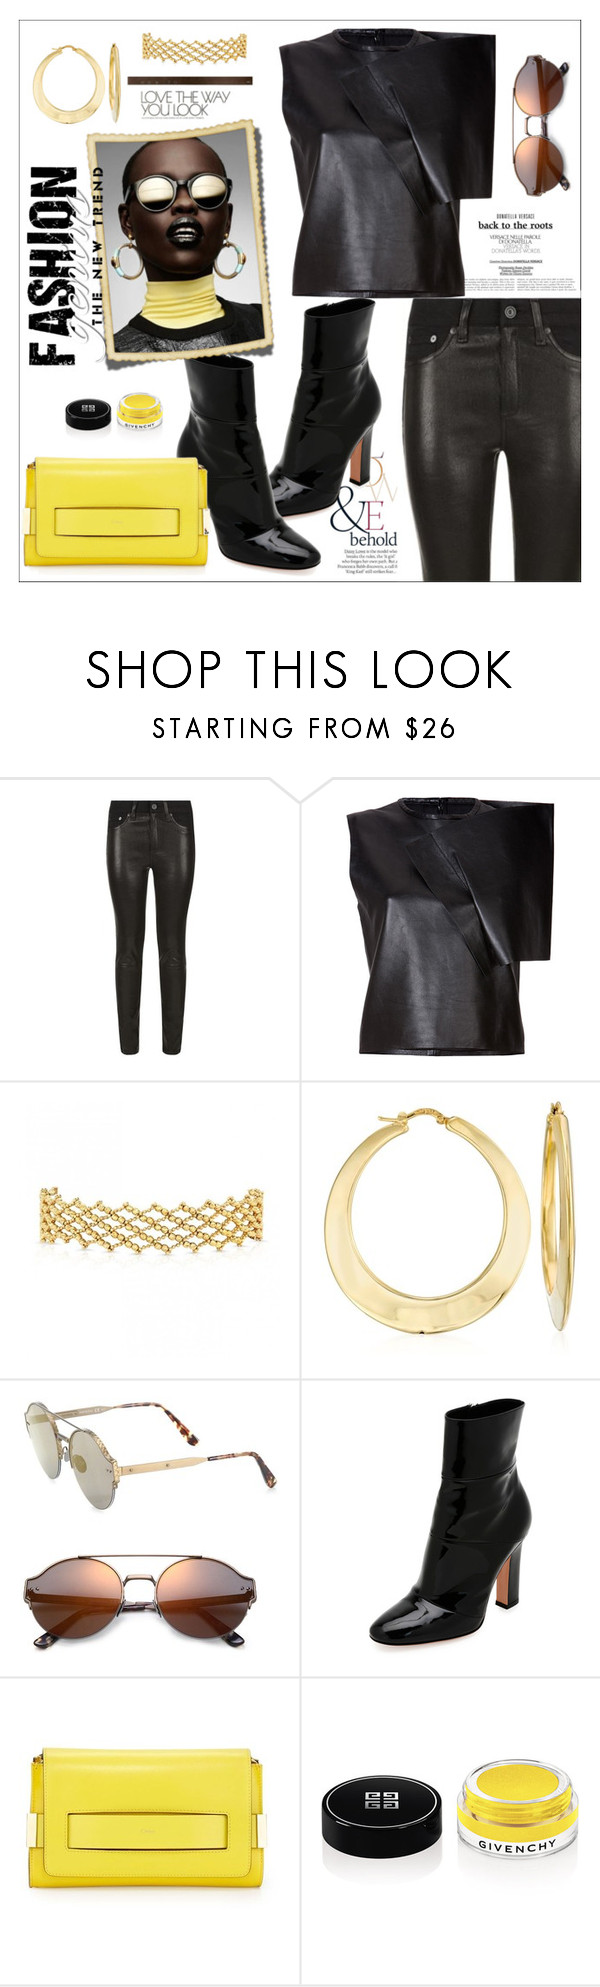 """""""Leather - BP"""" by biange ❤ liked on Polyvore featuring ASOS, rag & bone, J.W. Anderson, Ross-Simons, Bottega Veneta, Gianvito Rossi, Chloé and Givenchy"""